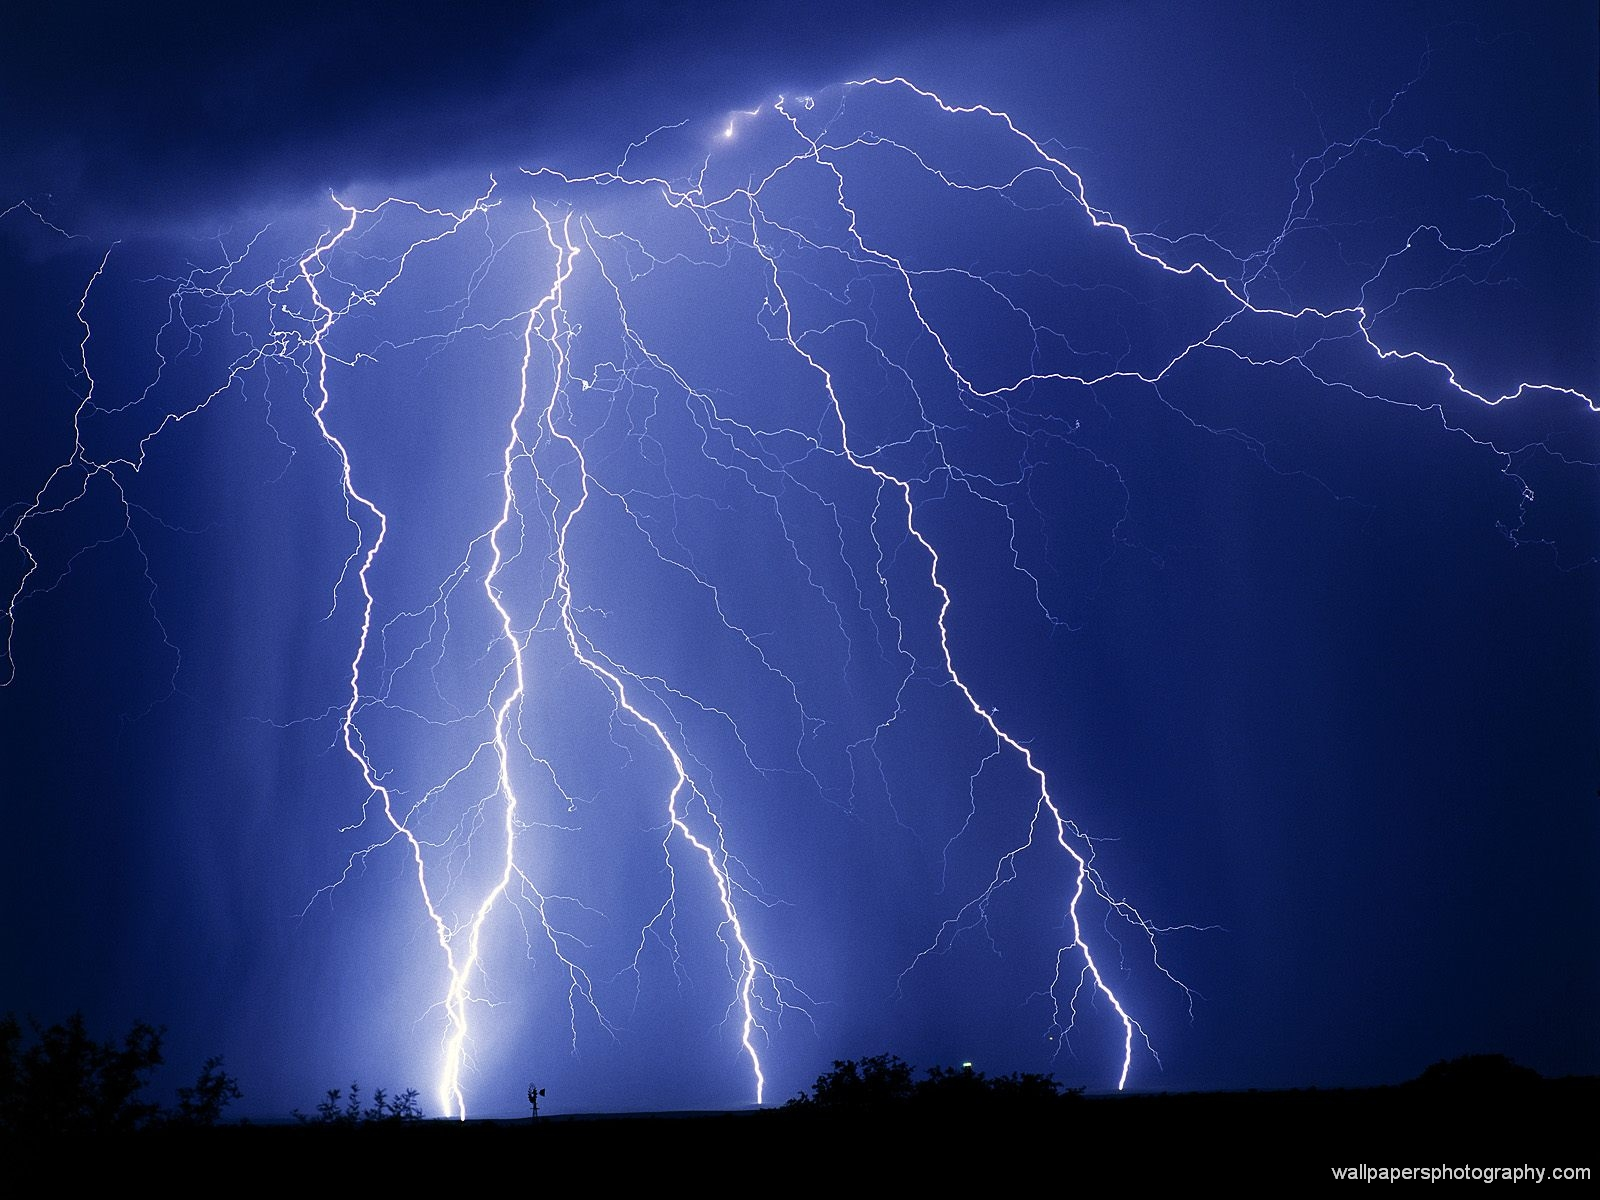 Lighting Wallpapers: Thunder and Lighting Wallpaper Px 1600x1200px